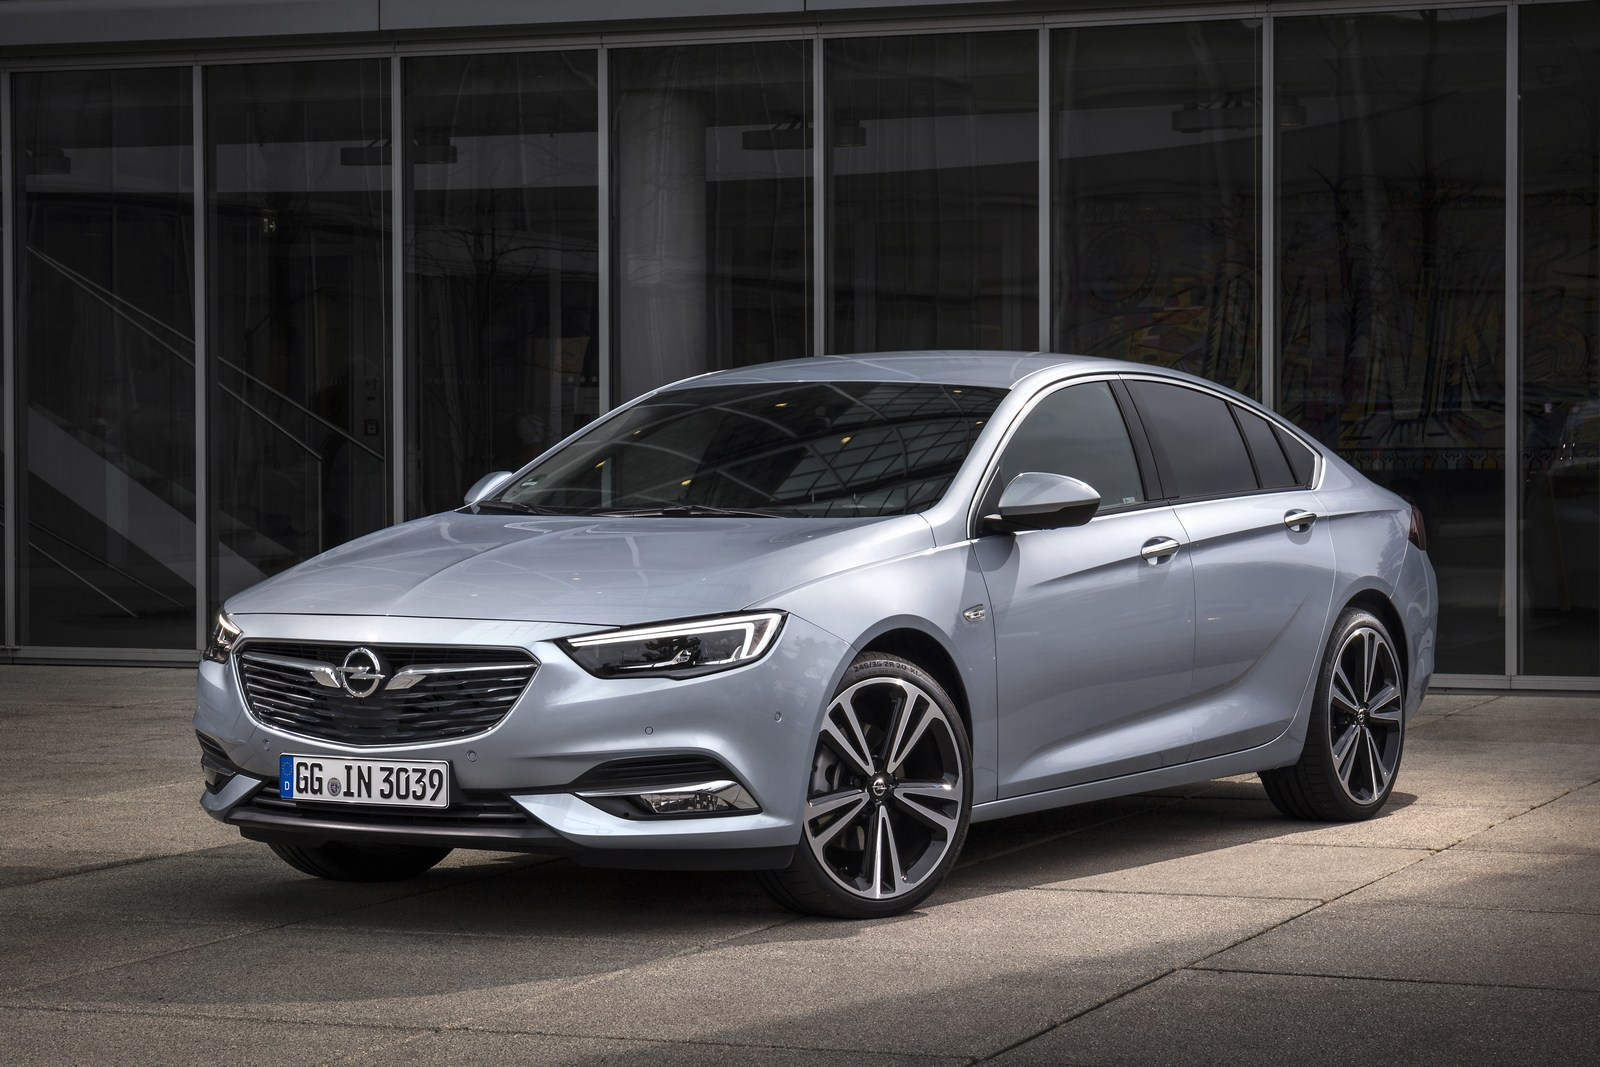 opel insignia gains new 210ps twin turbo diesel engine. Black Bedroom Furniture Sets. Home Design Ideas